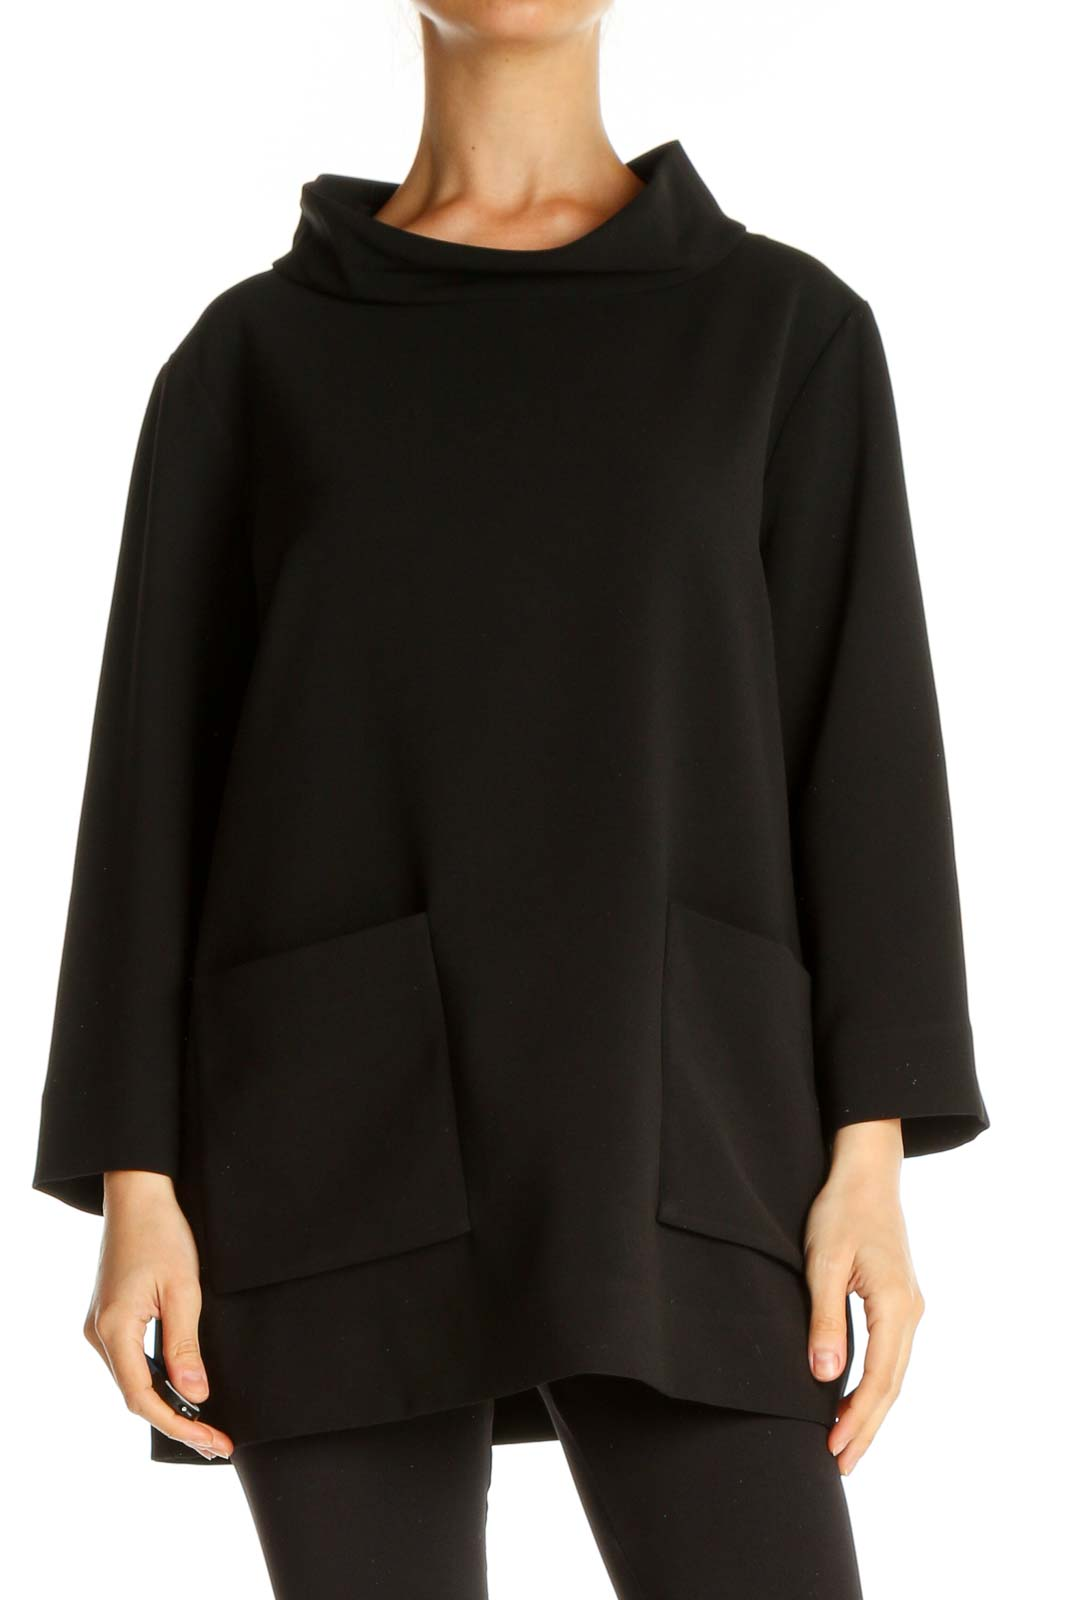 Black Solid All Day Wear Top Front